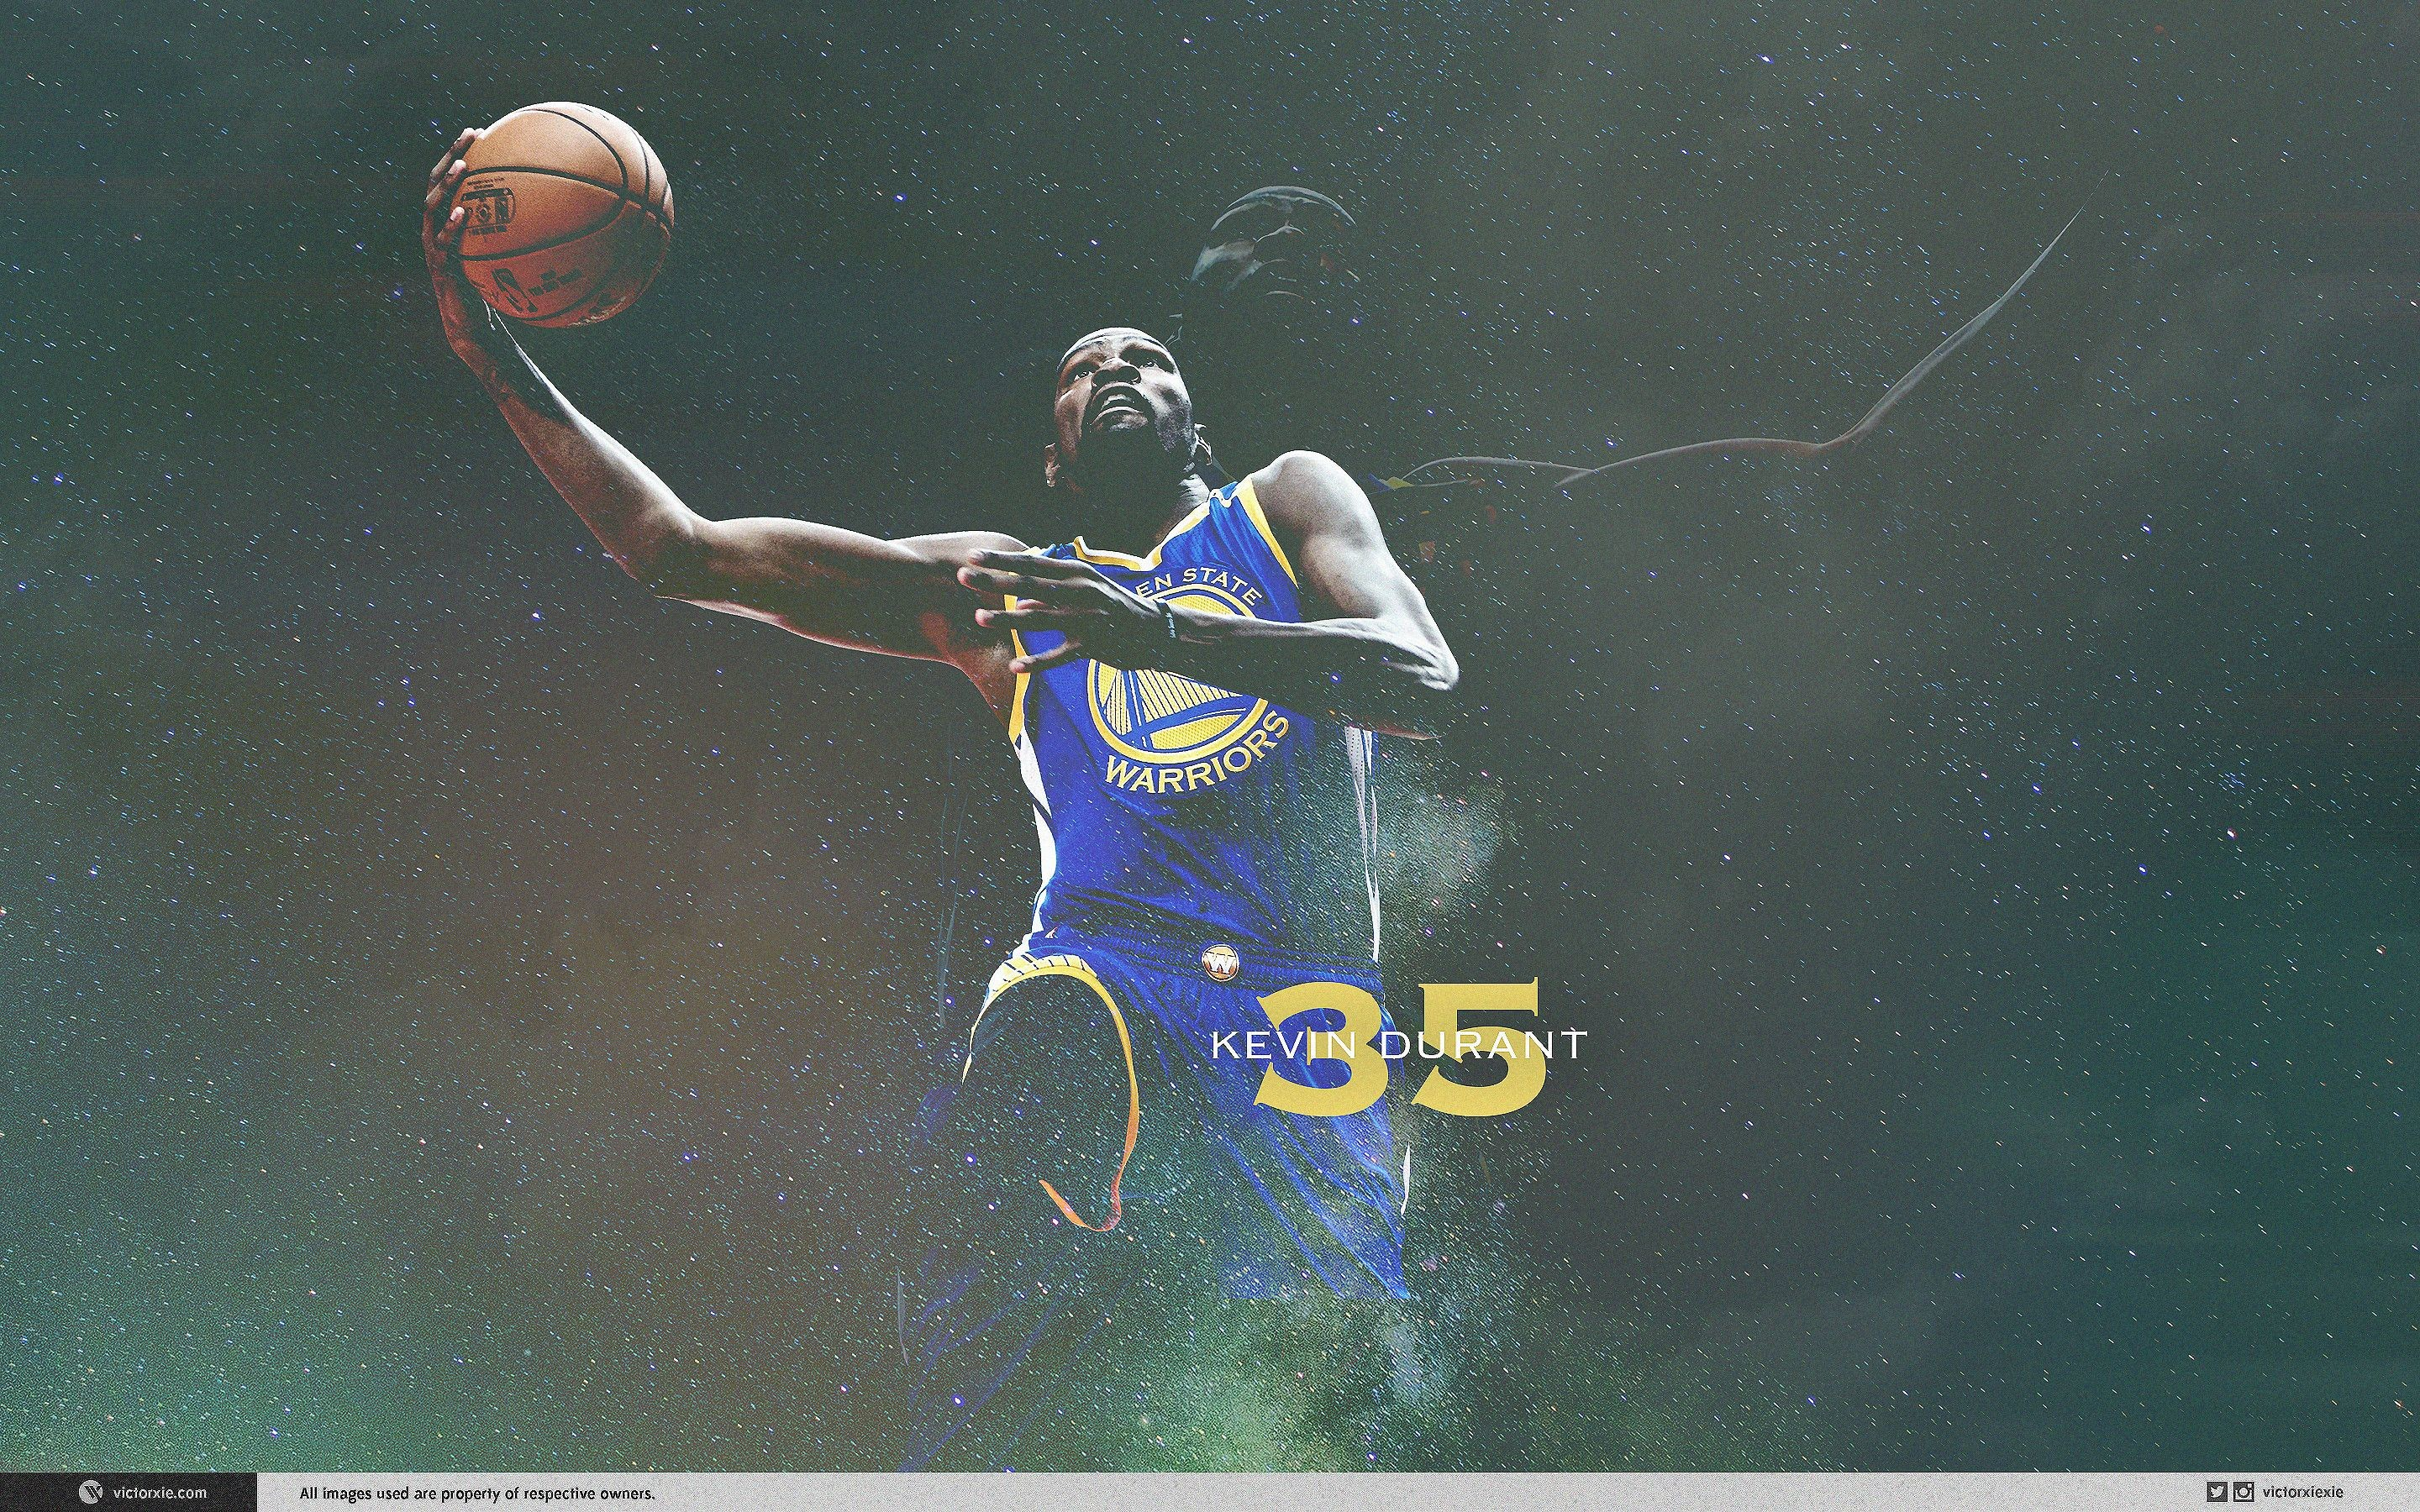 2048x1280 Kevin Durant Wallpaper Desktop High Quality Of Iphone Vs Lebron James Background Photos New Hd